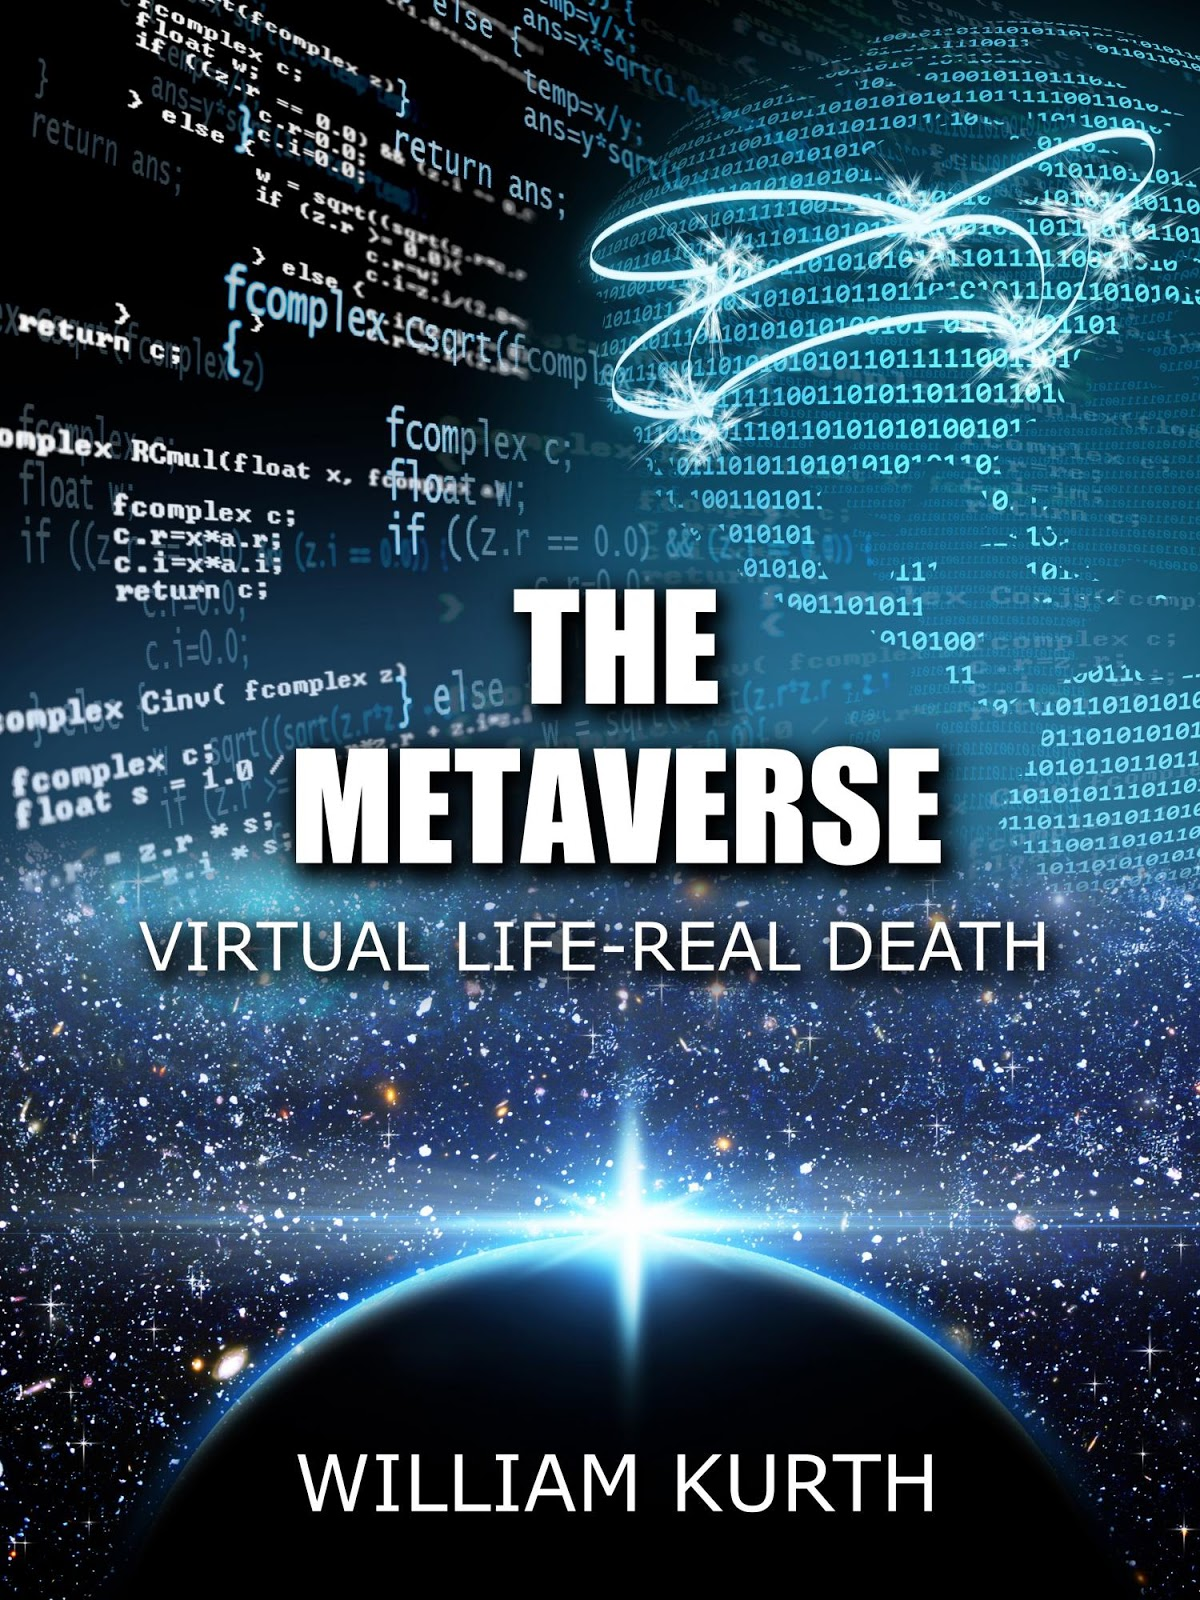 The Metaverse: Virtual Life  Real Death By William Kurth